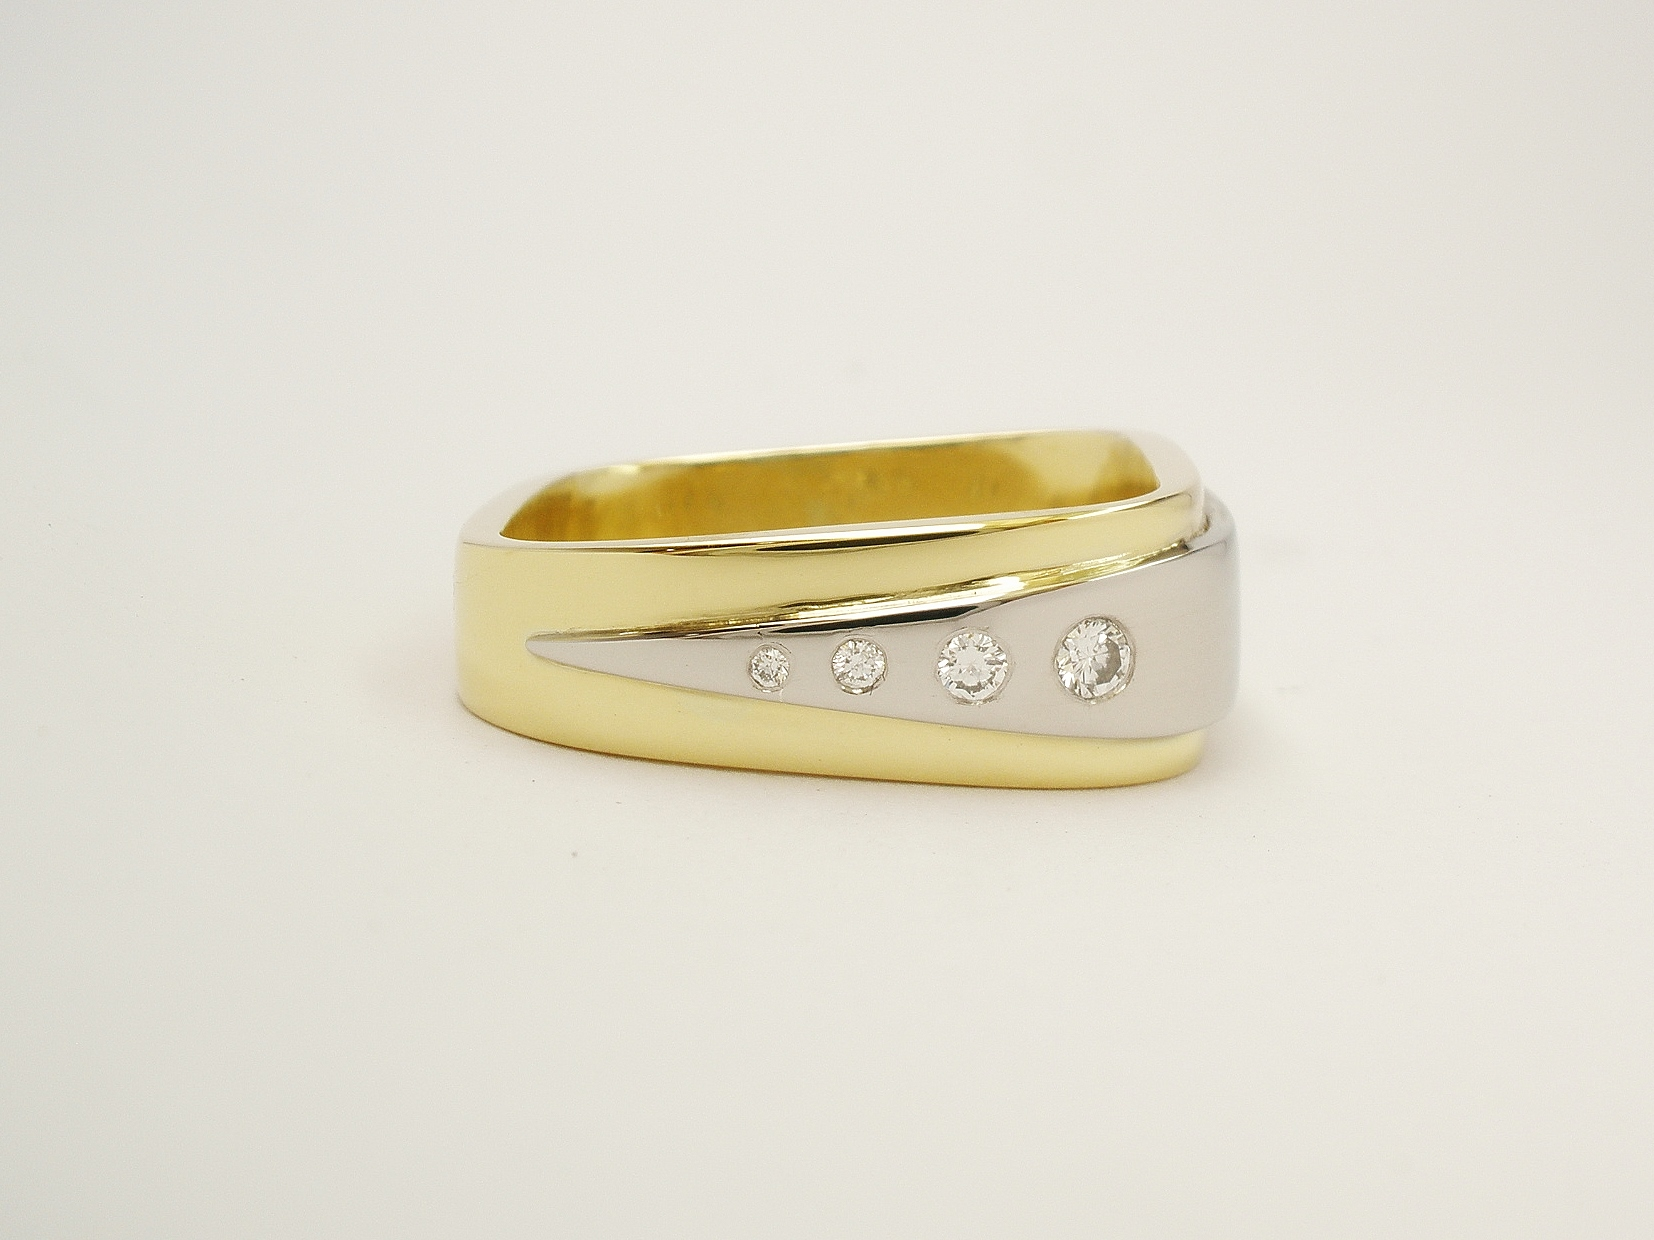 18ct. yellow gold 'wedge' shaped square ring overlaid with a wedge shaped platinum plate flush set with tapering sized round diamonds.